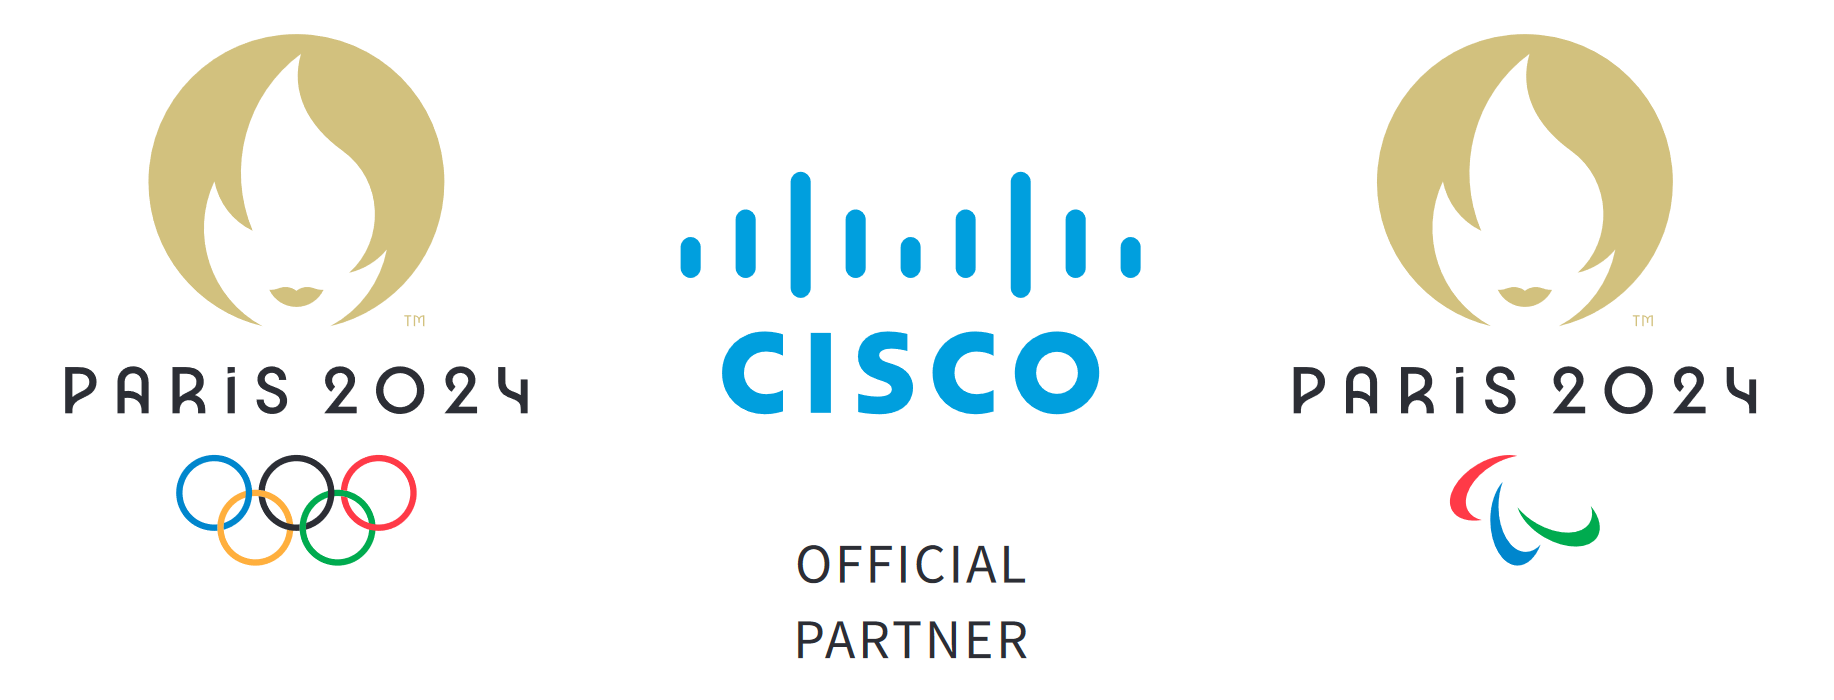 Cisco has become an official partner of Paris 2024 ©Paris 2024